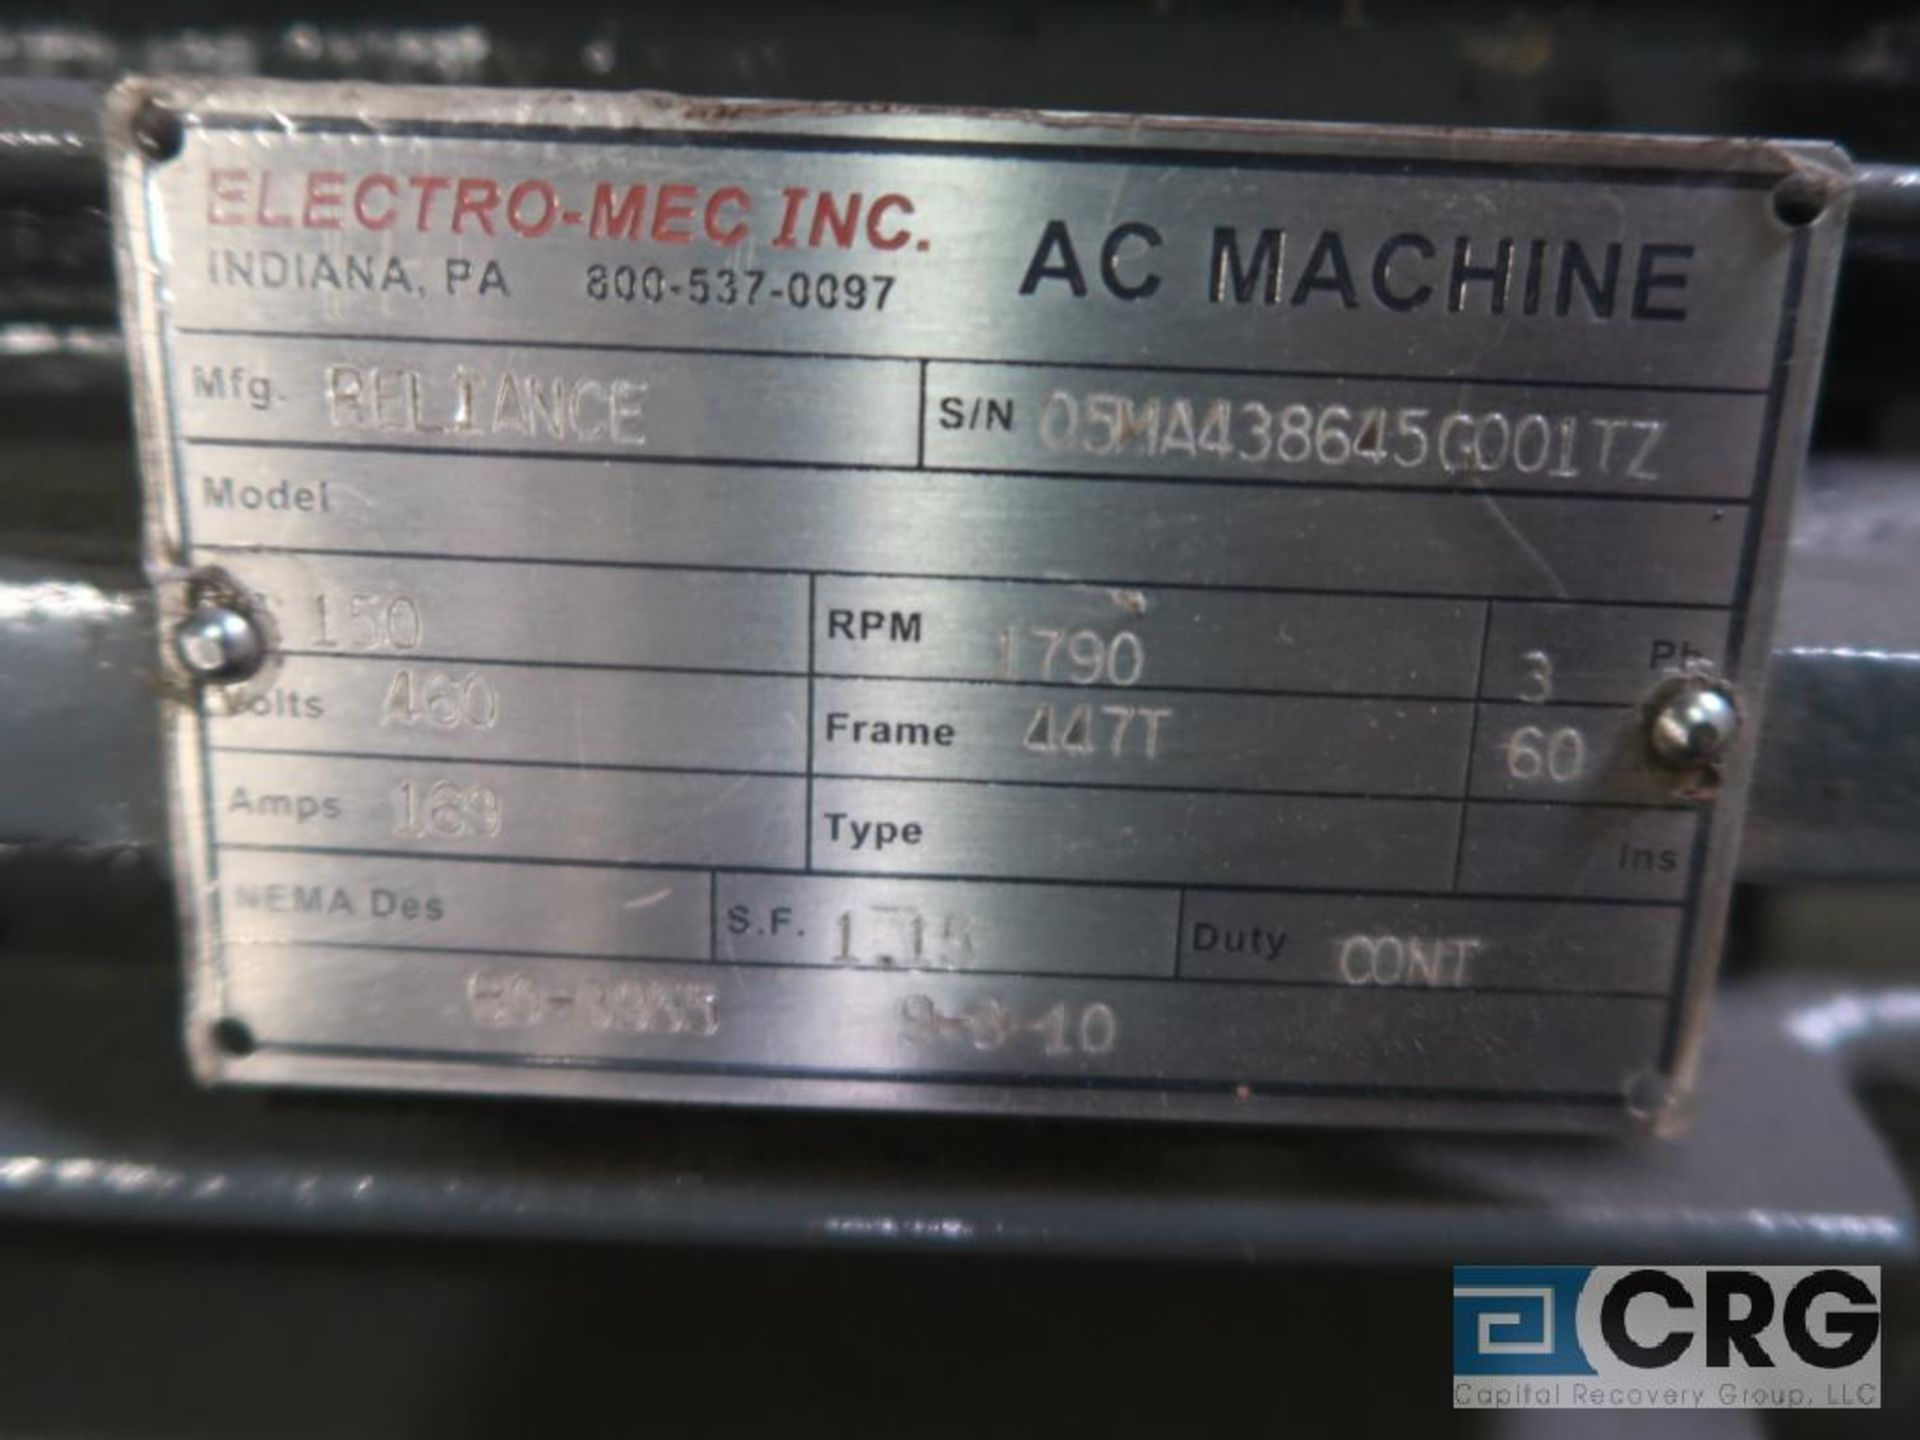 Reliance electric motor, 150 HP, 1,790 RPMs, 460 volt, 3 ph., 447T frame (Finish Building) - Image 2 of 2